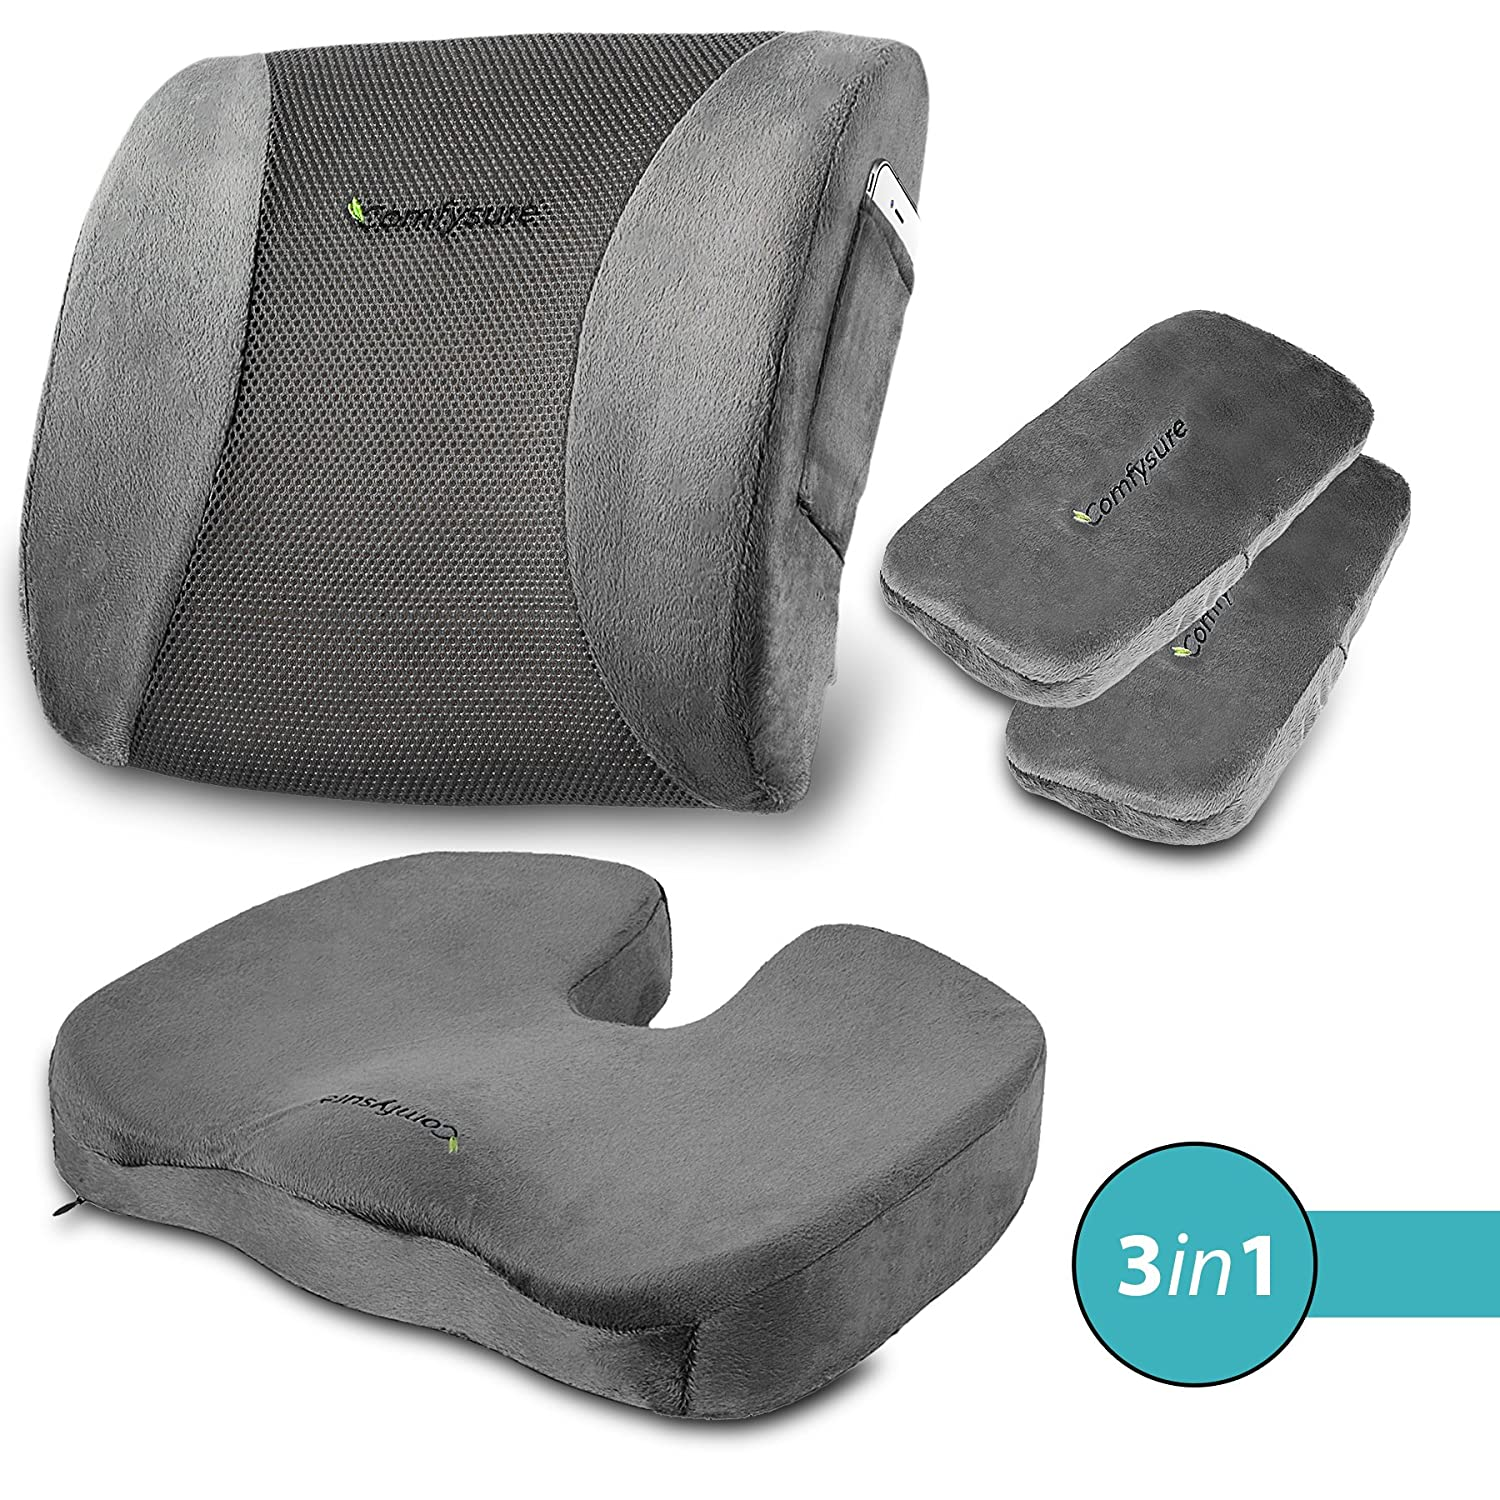 ComfySure 3 Piece Seat Cushion Set – Back Lumbar Support, Tailbone Coccyx Pain Relief and 2 Padded Armrest Covers – Memory Foam, Removable Plush Covers – Fits Most Office Computer Chairs -by